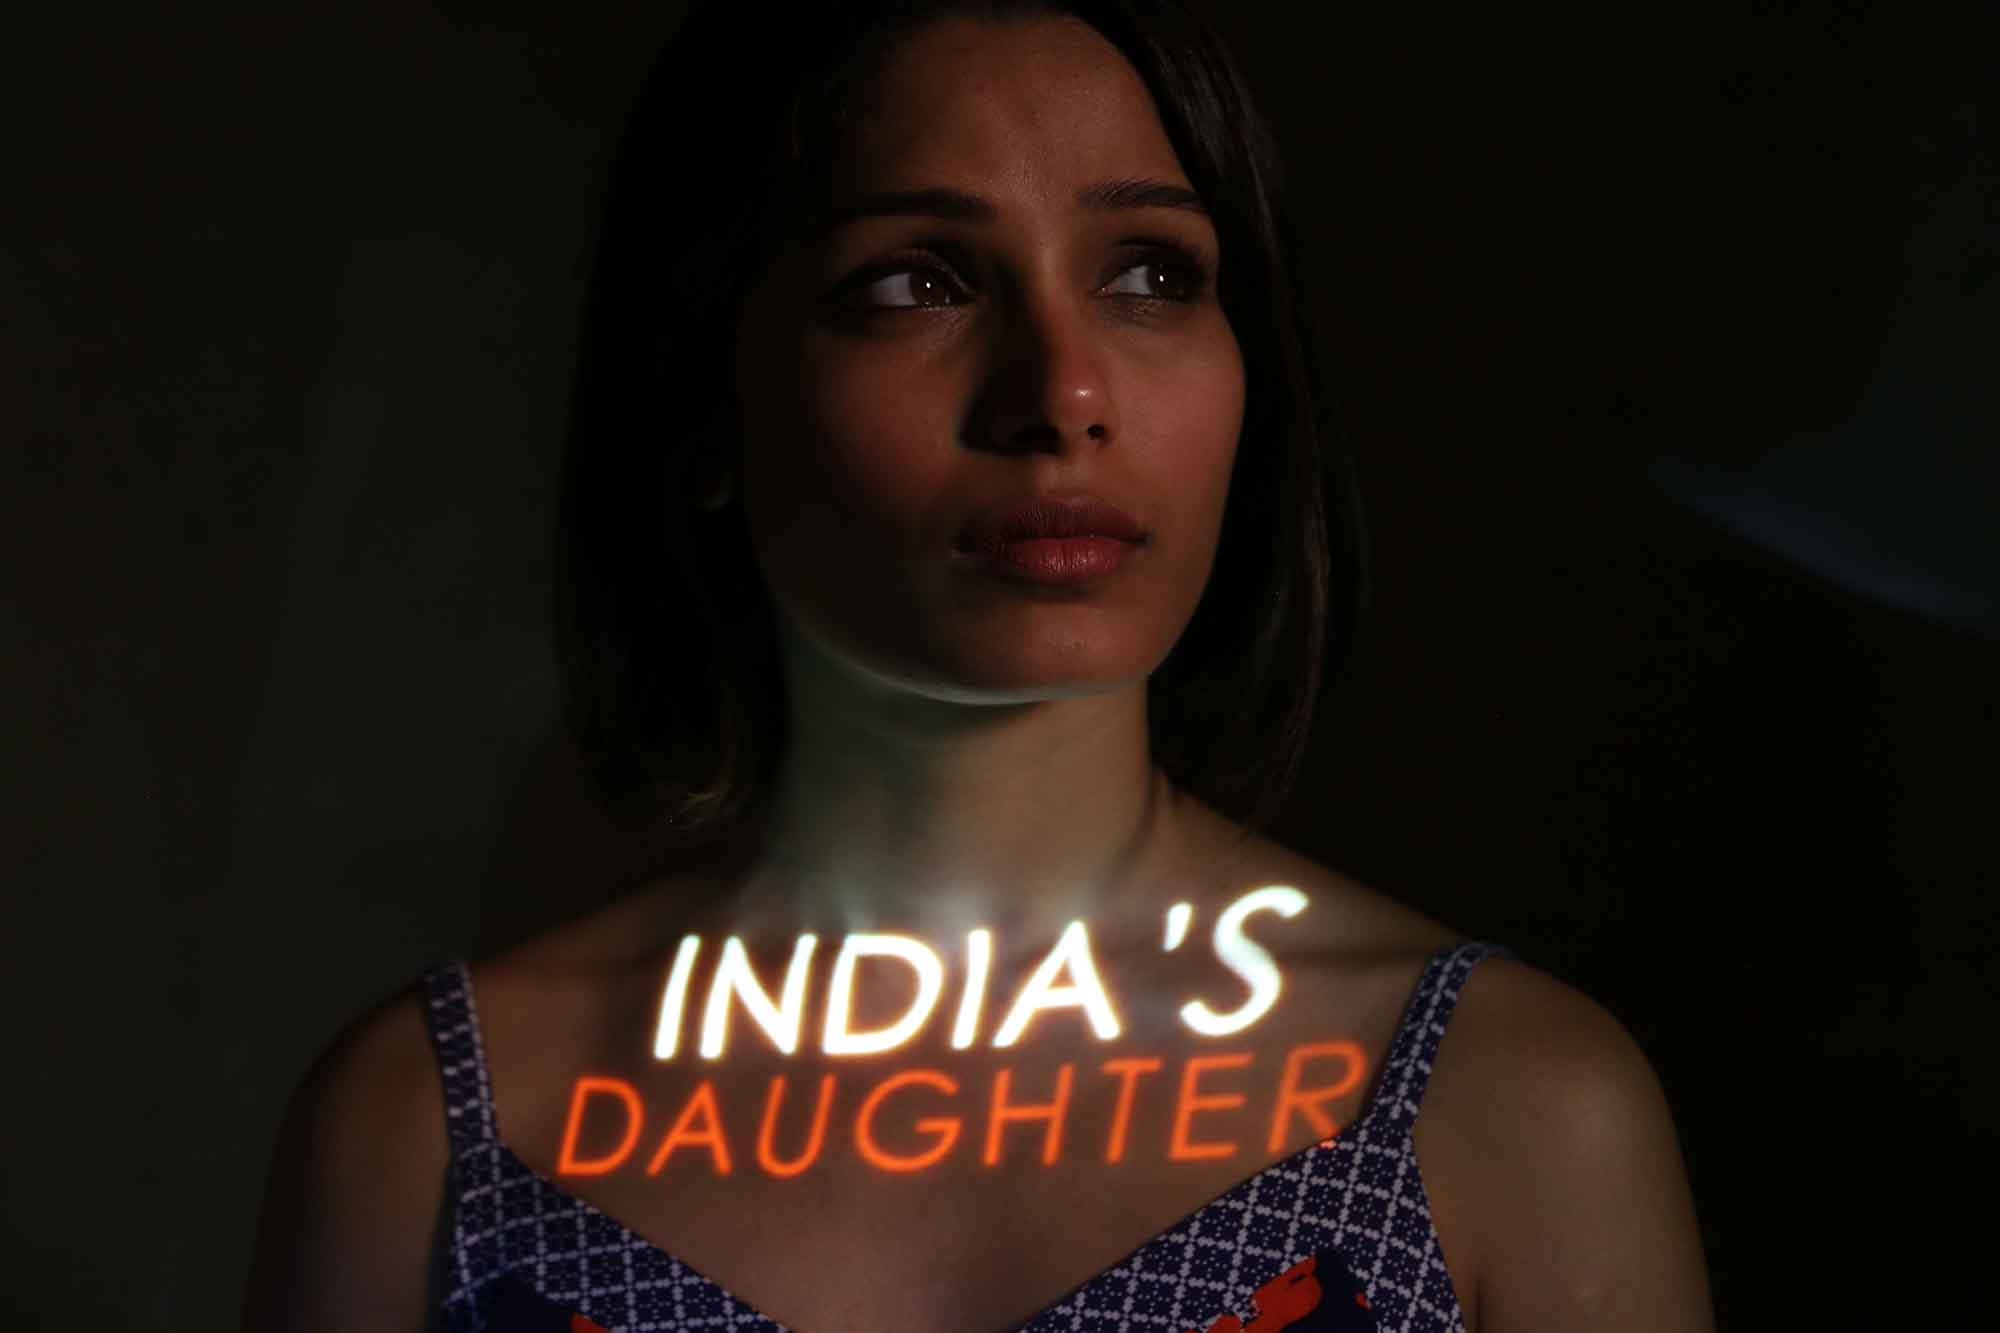 Frieda Pinto supports India's Daughter and calls for an end to violence against women in India